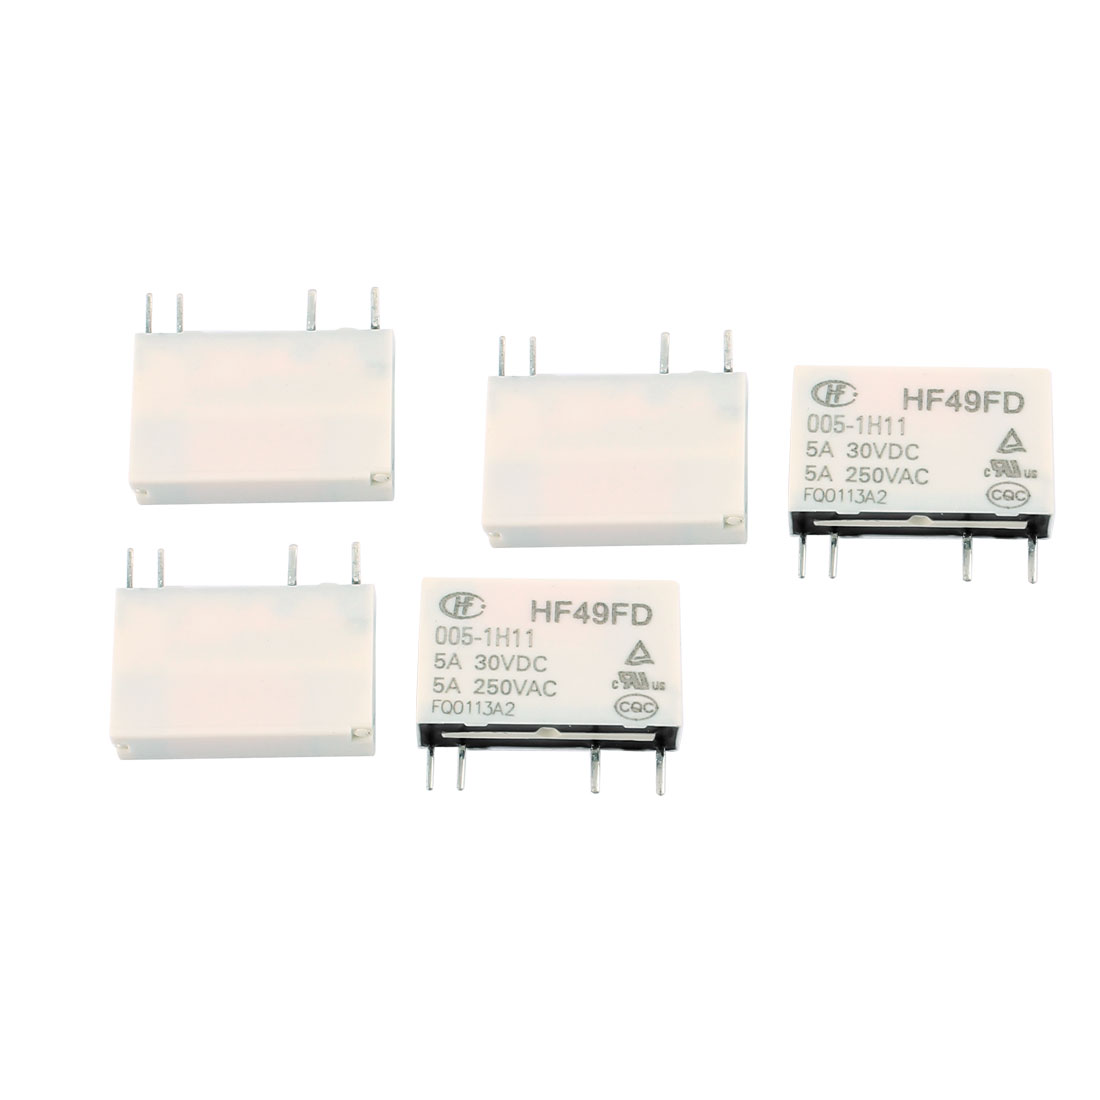 5 Pcs 30VDC 250VAC 5A 4 Terminal NO SPST HF49FD/005-1H11 Power Relay